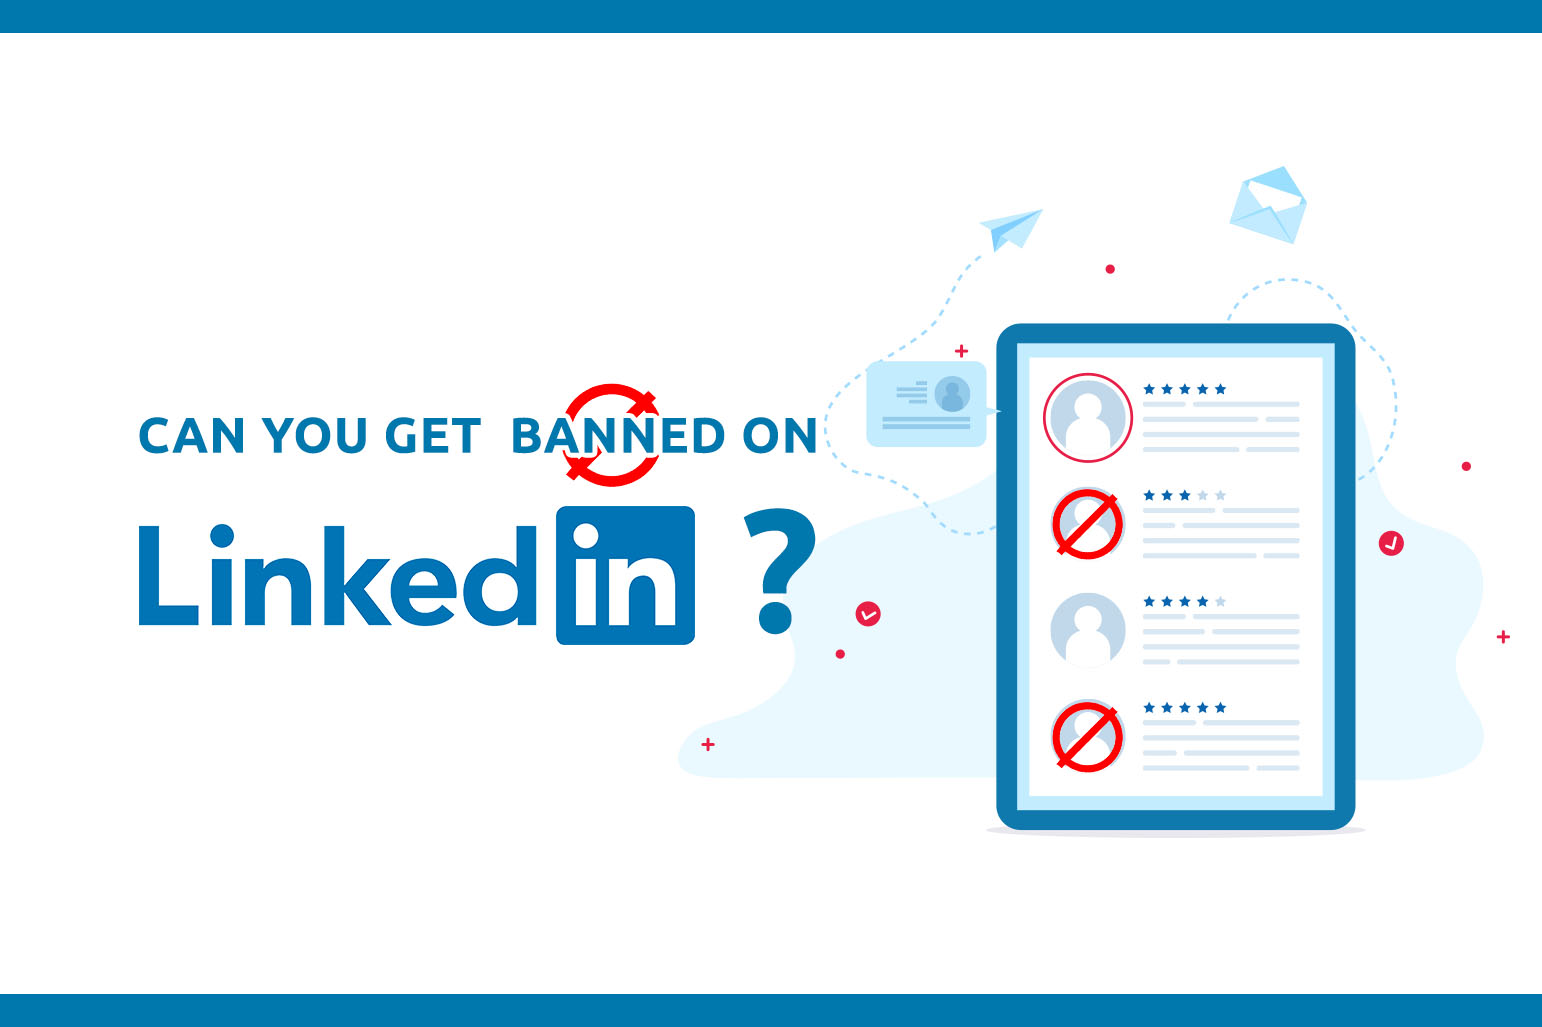 Can You Get Banned On LinkedIn?